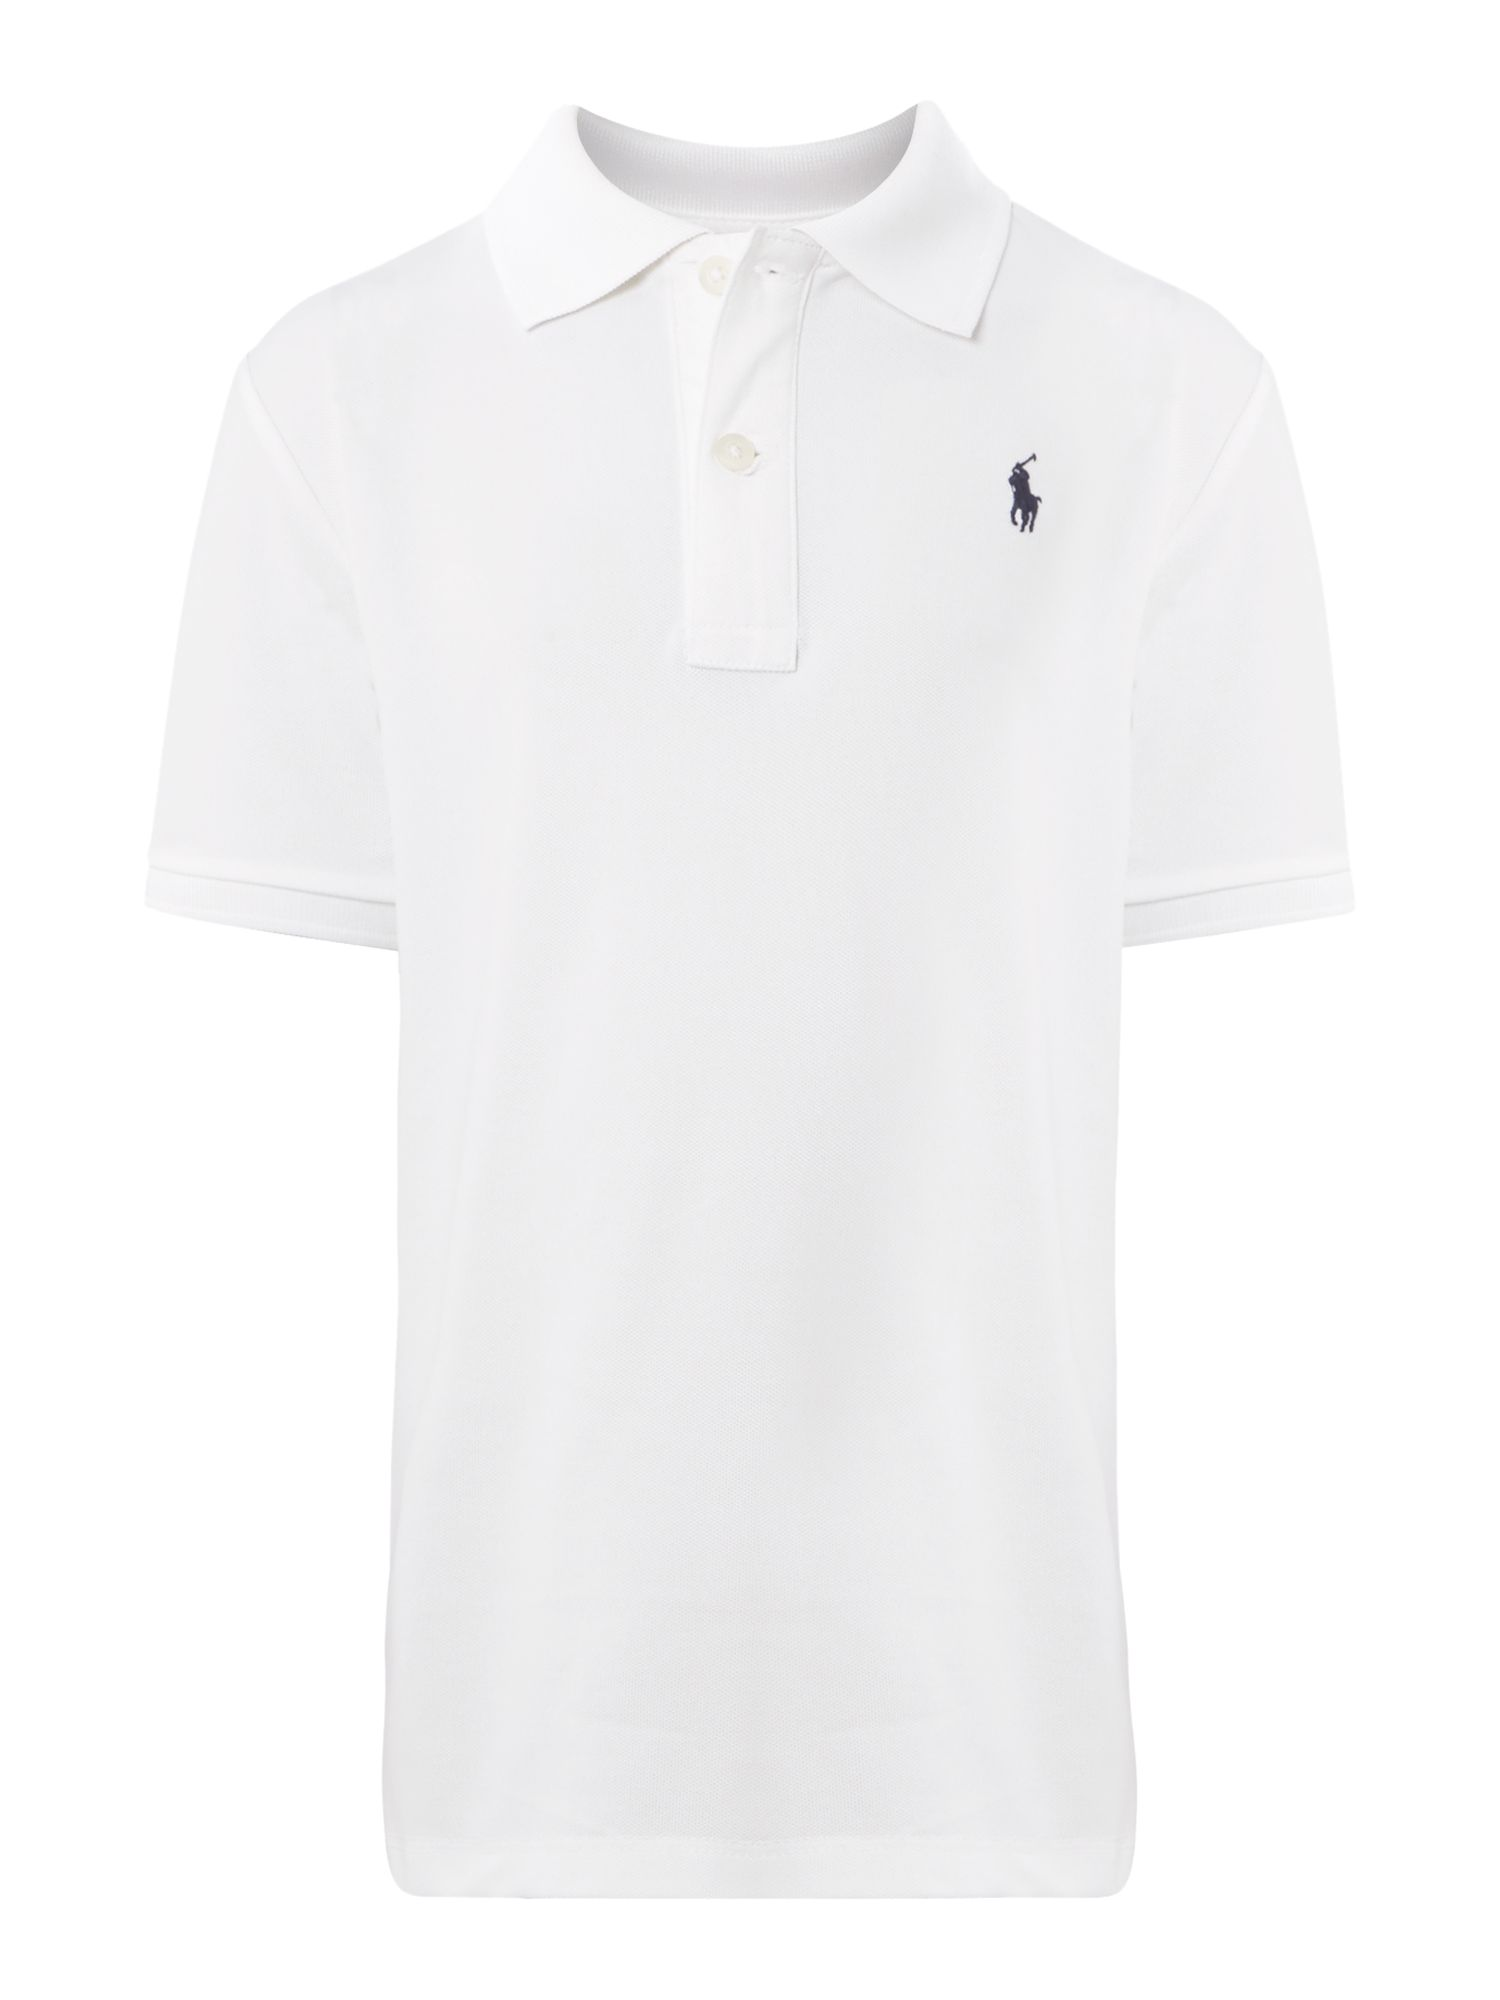 Boys sports polo shirt